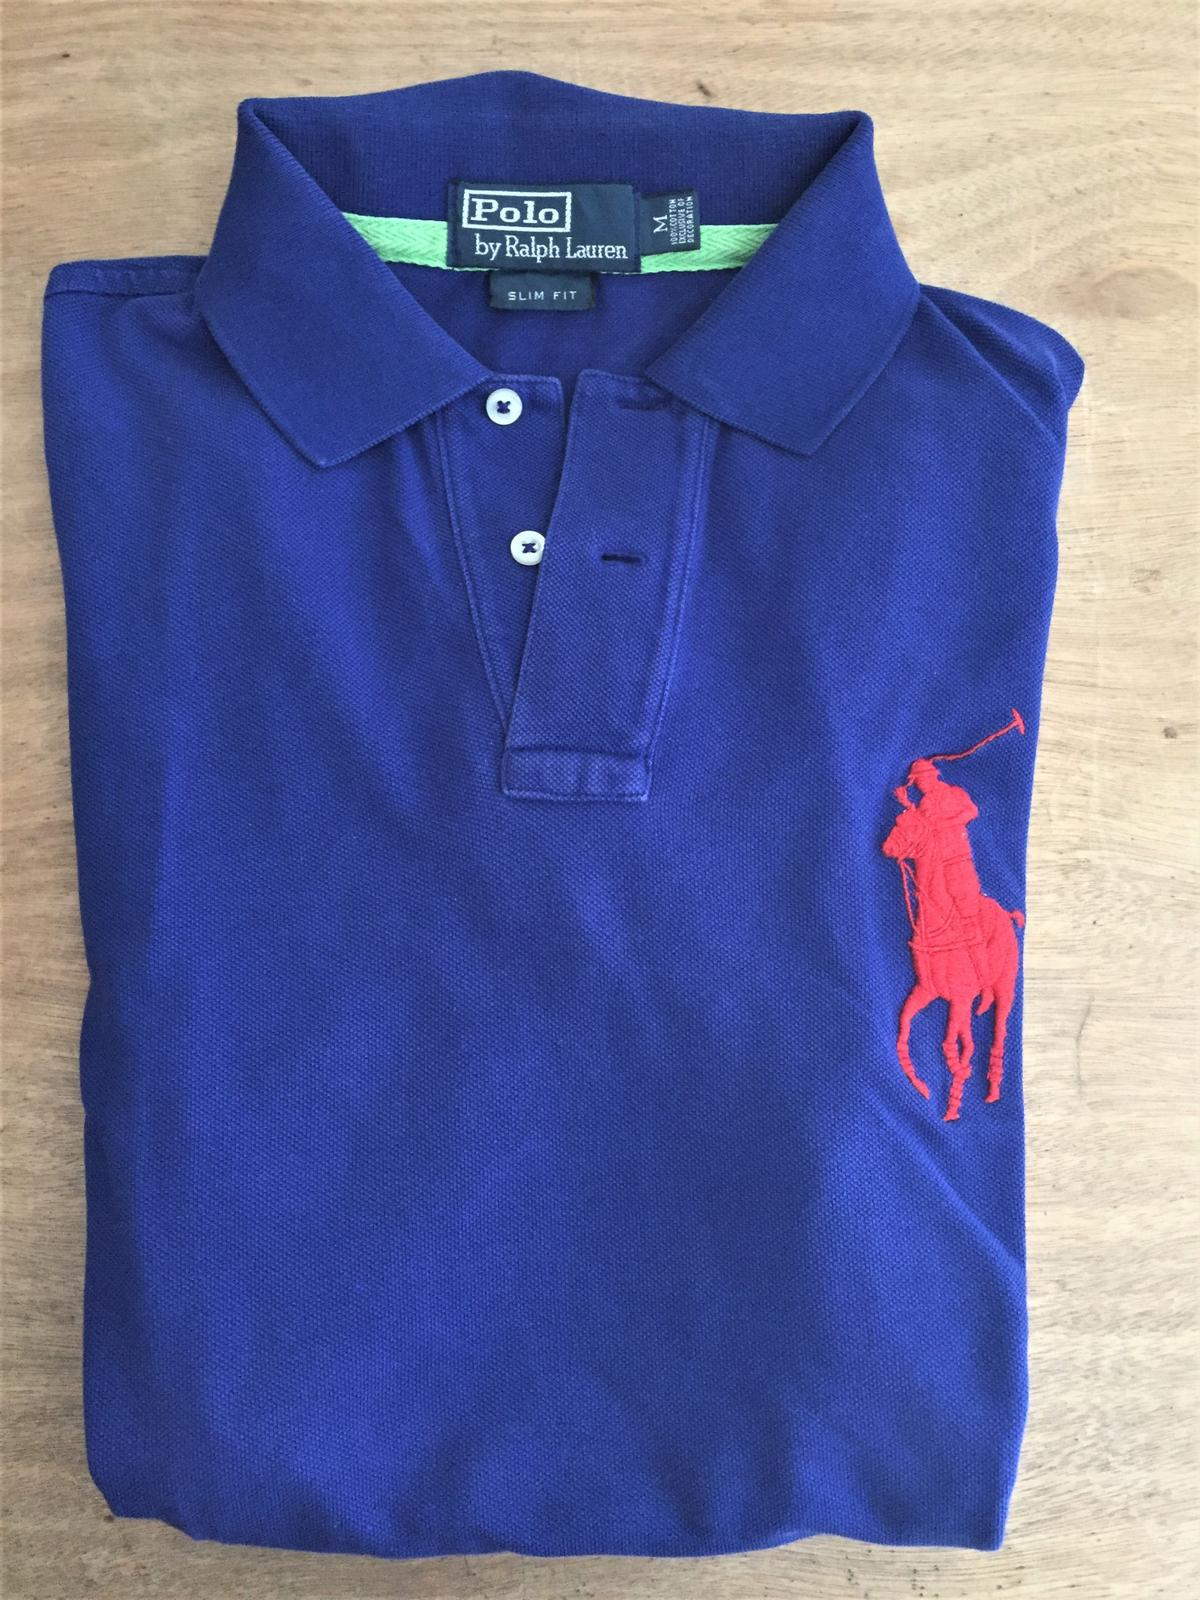 competitive price 4034c 7bbe1 Ralph Lauren Polohemd in 80331 München for €25.00 for sale ...